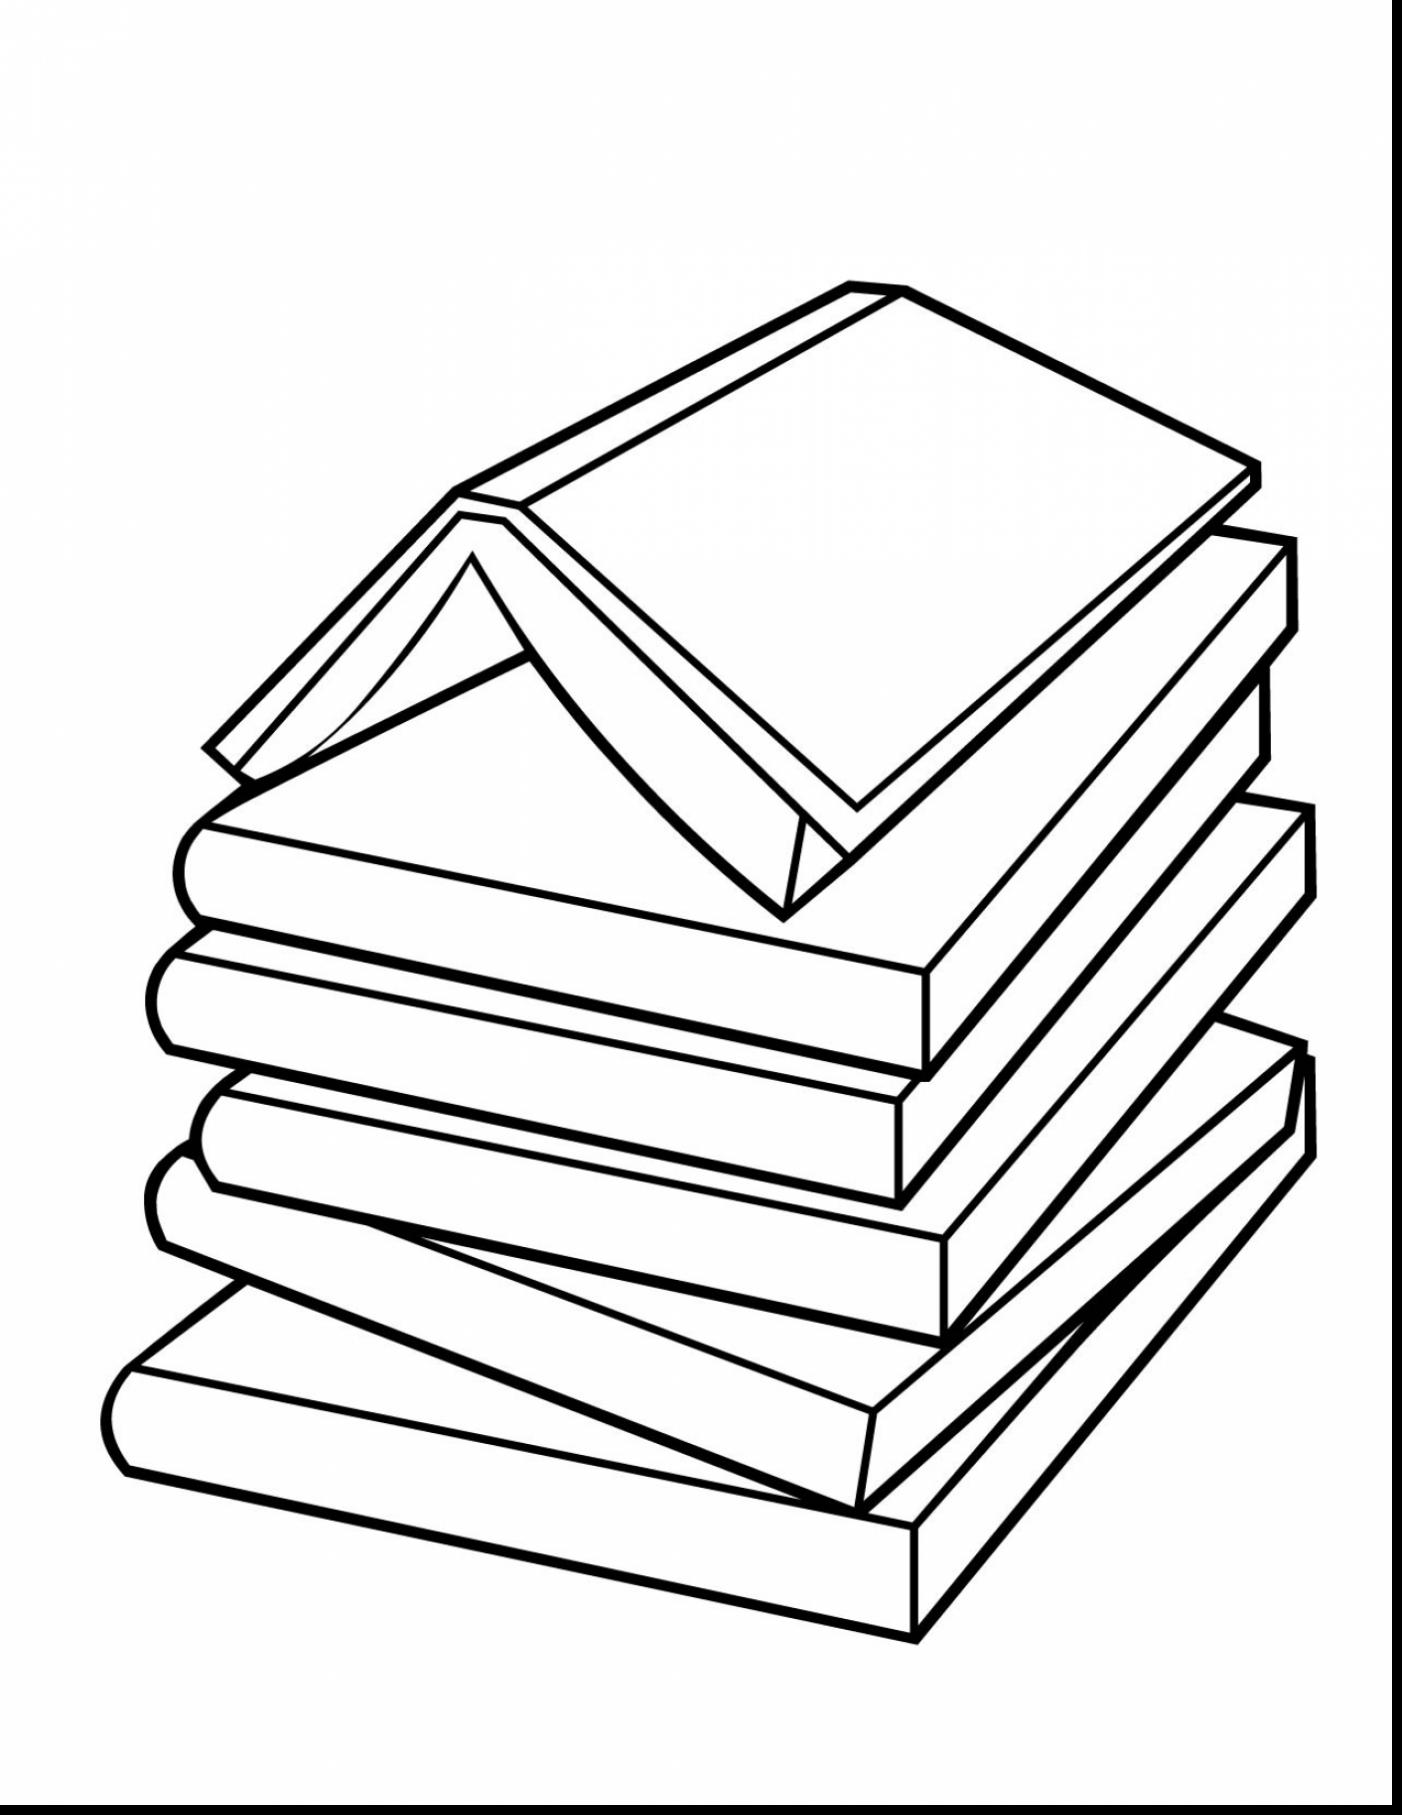 Blank Drawing Book at GetDrawings.com | Free for personal ...